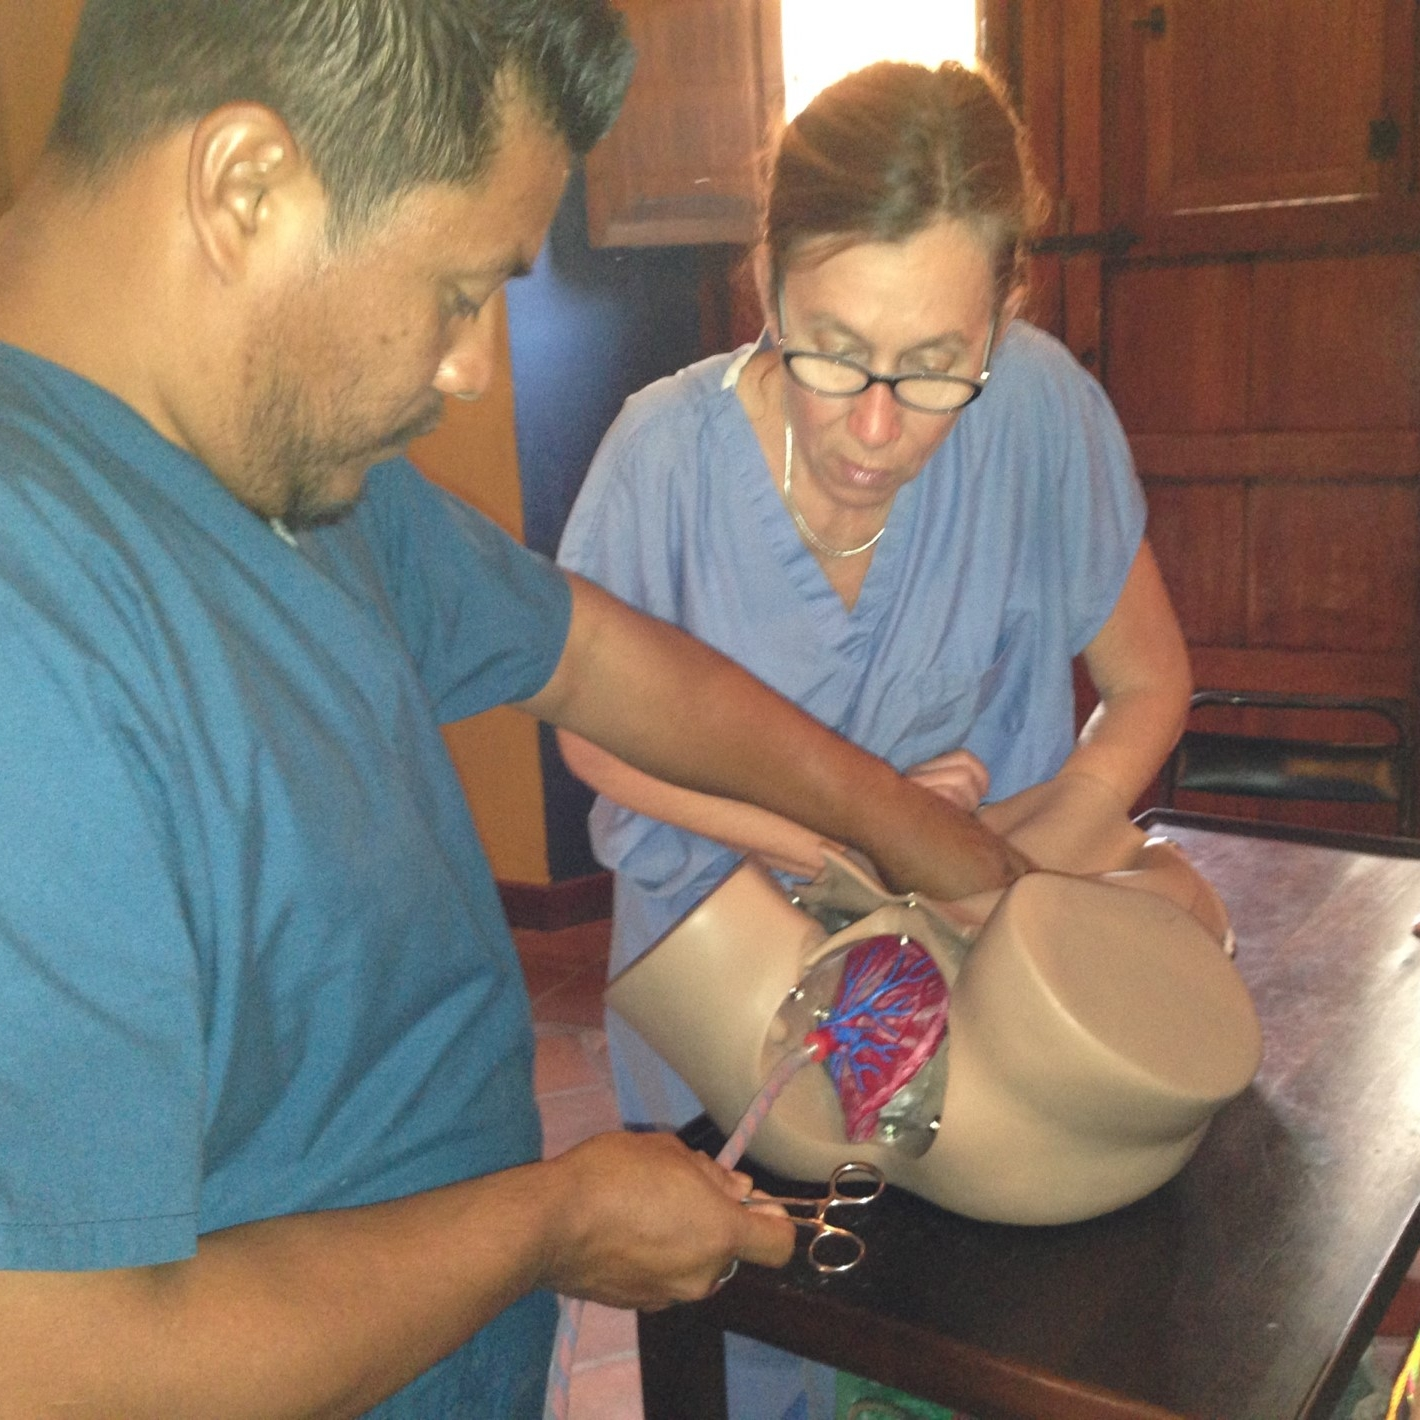 Dr. Antonia Nicosia observes a medical student through hands-on simulation in Nicaragua.